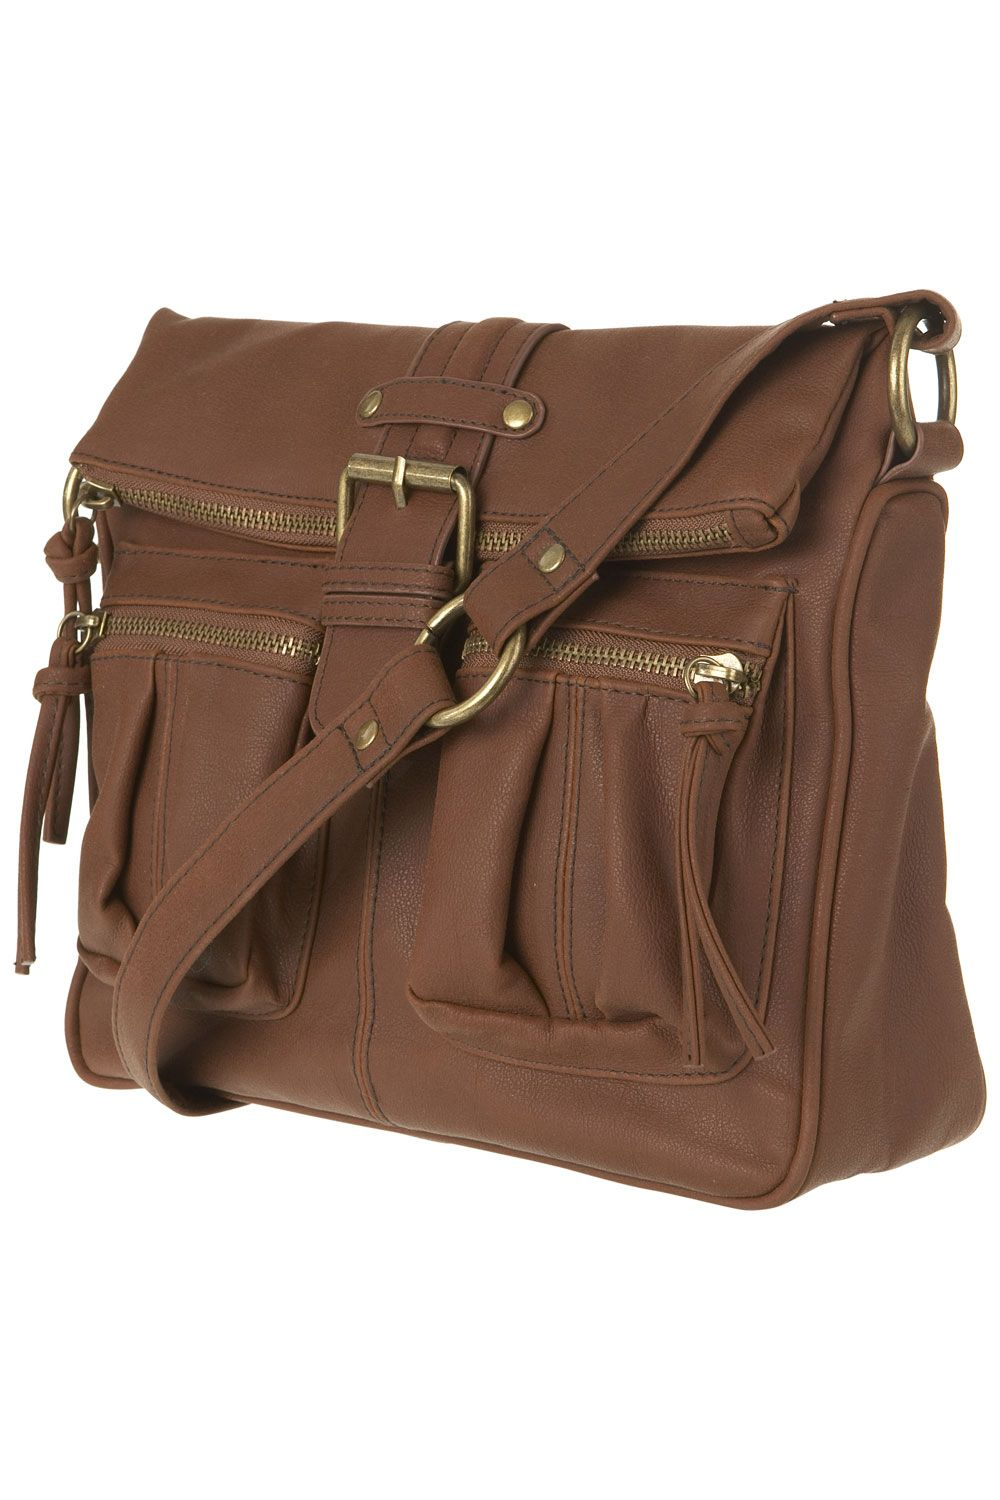 Warehouse Buckle front crossbody Brown product image